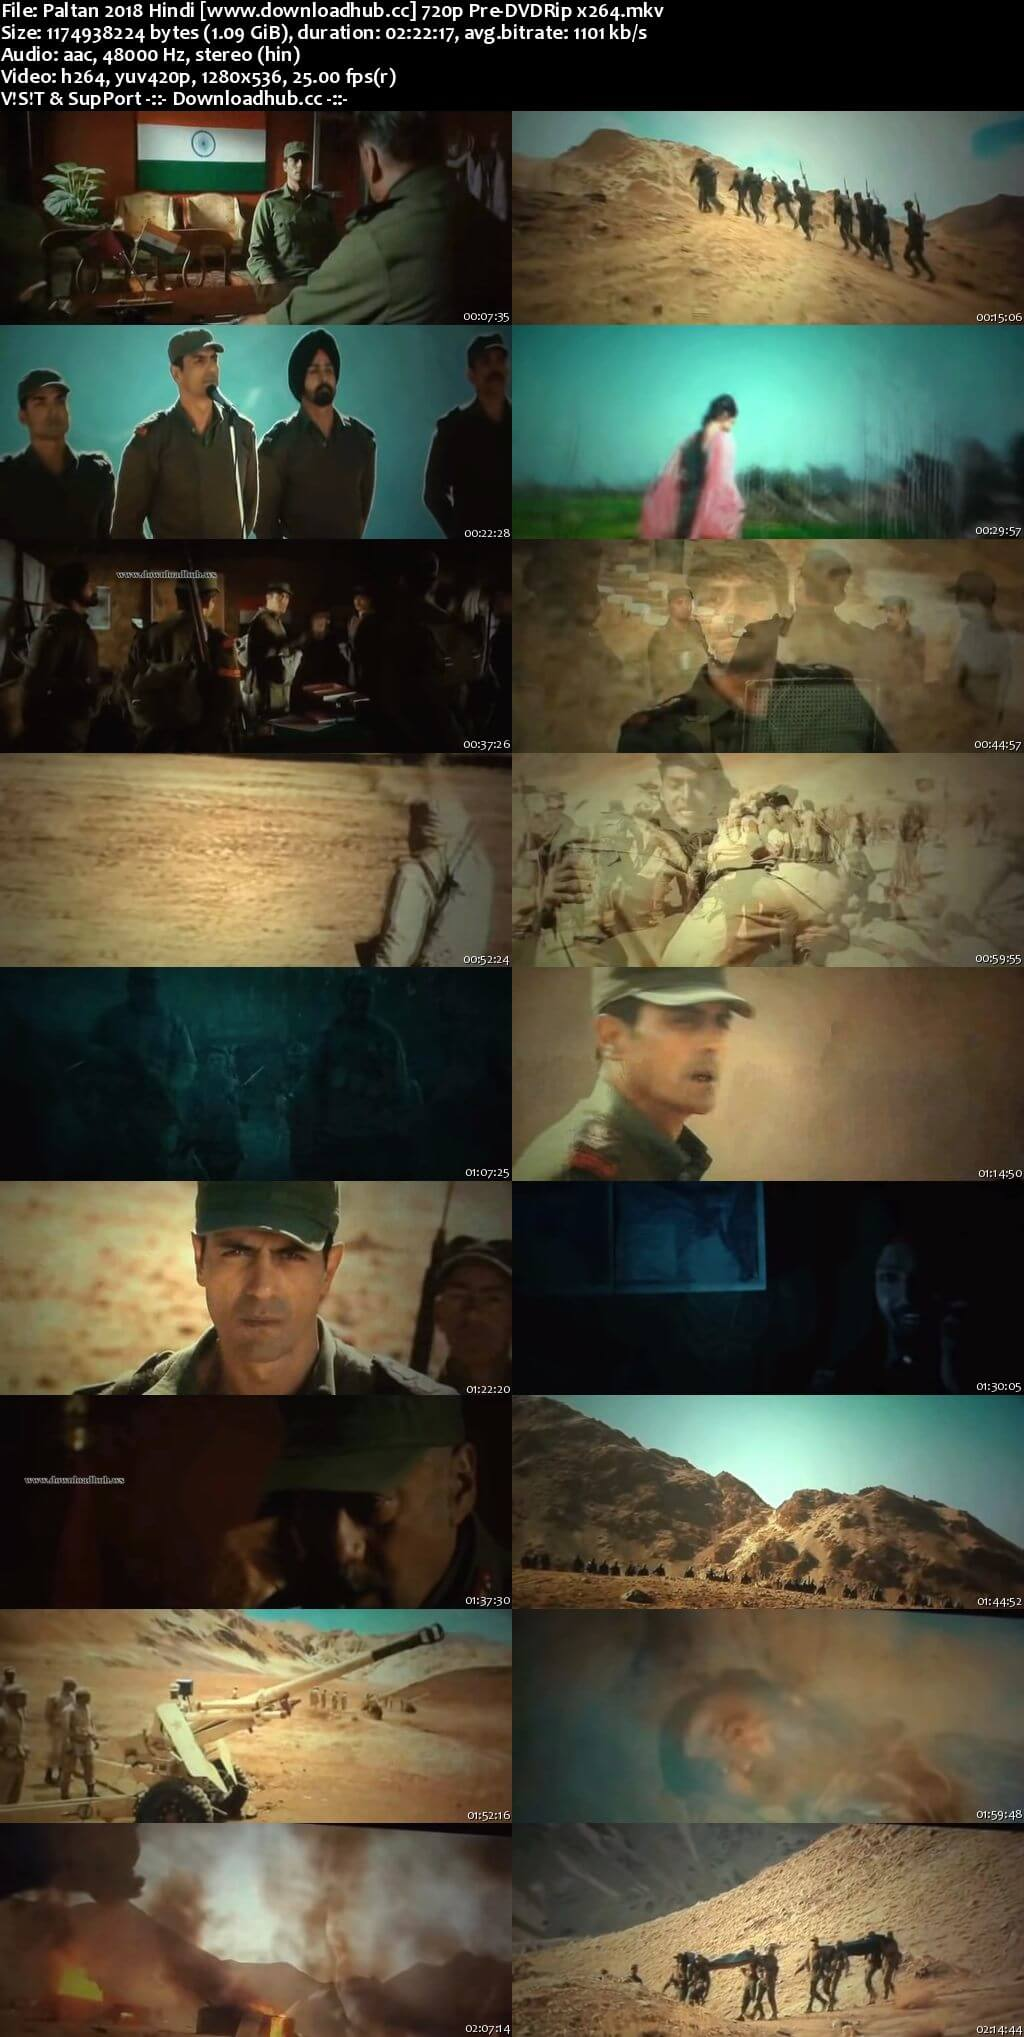 Paltan 2018 Hindi 720p Pre-DVDRip x264